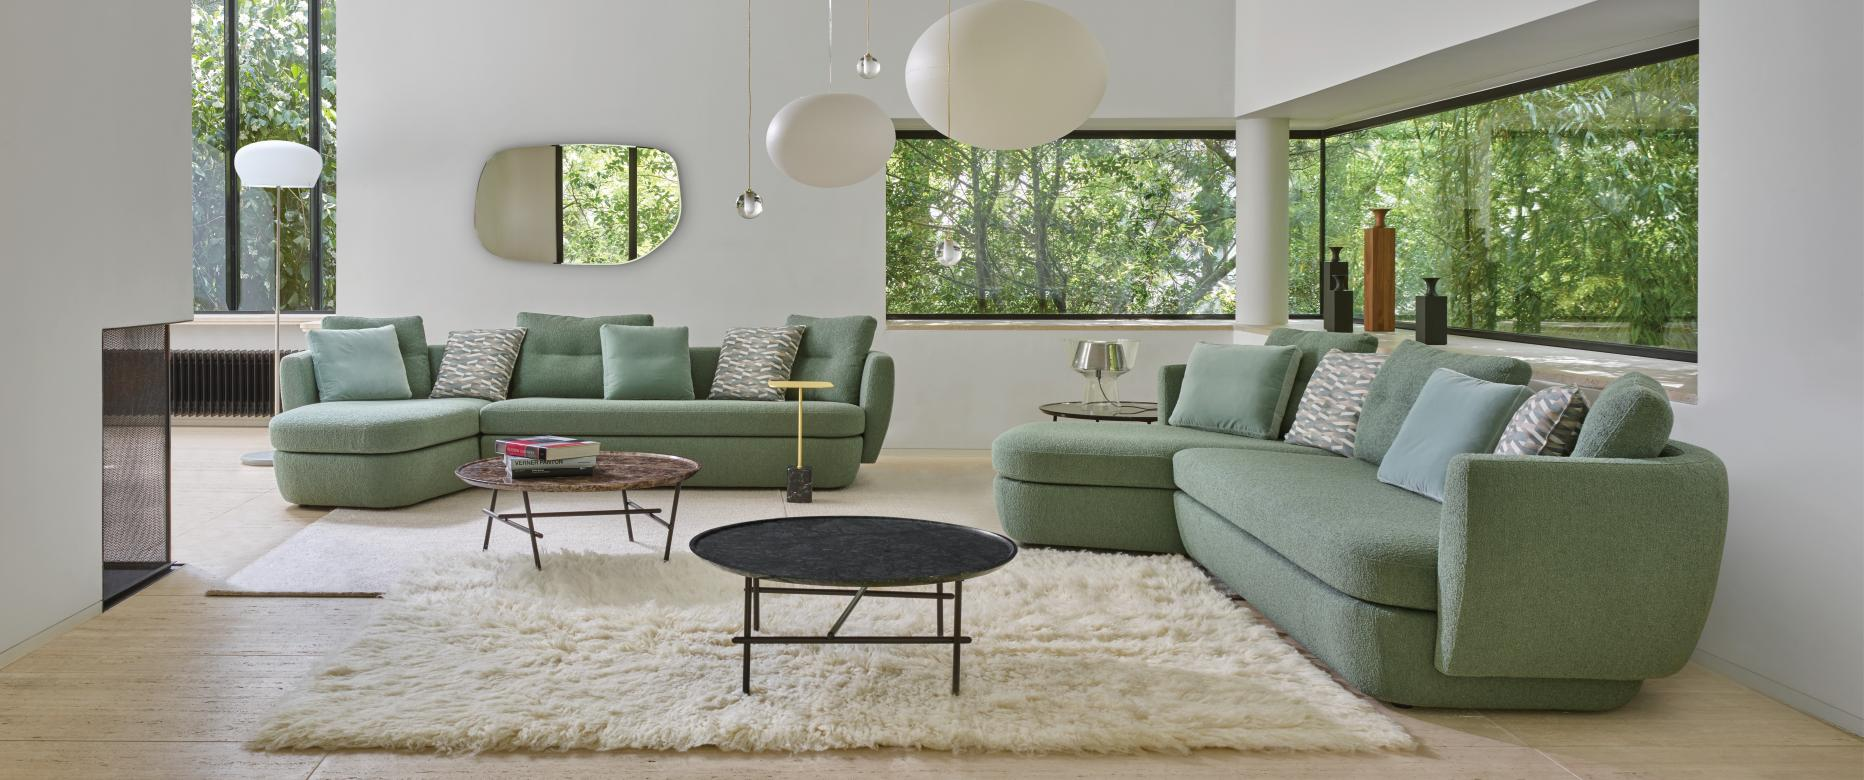 Ligne Roset Official Site Contemporary Design Furniture